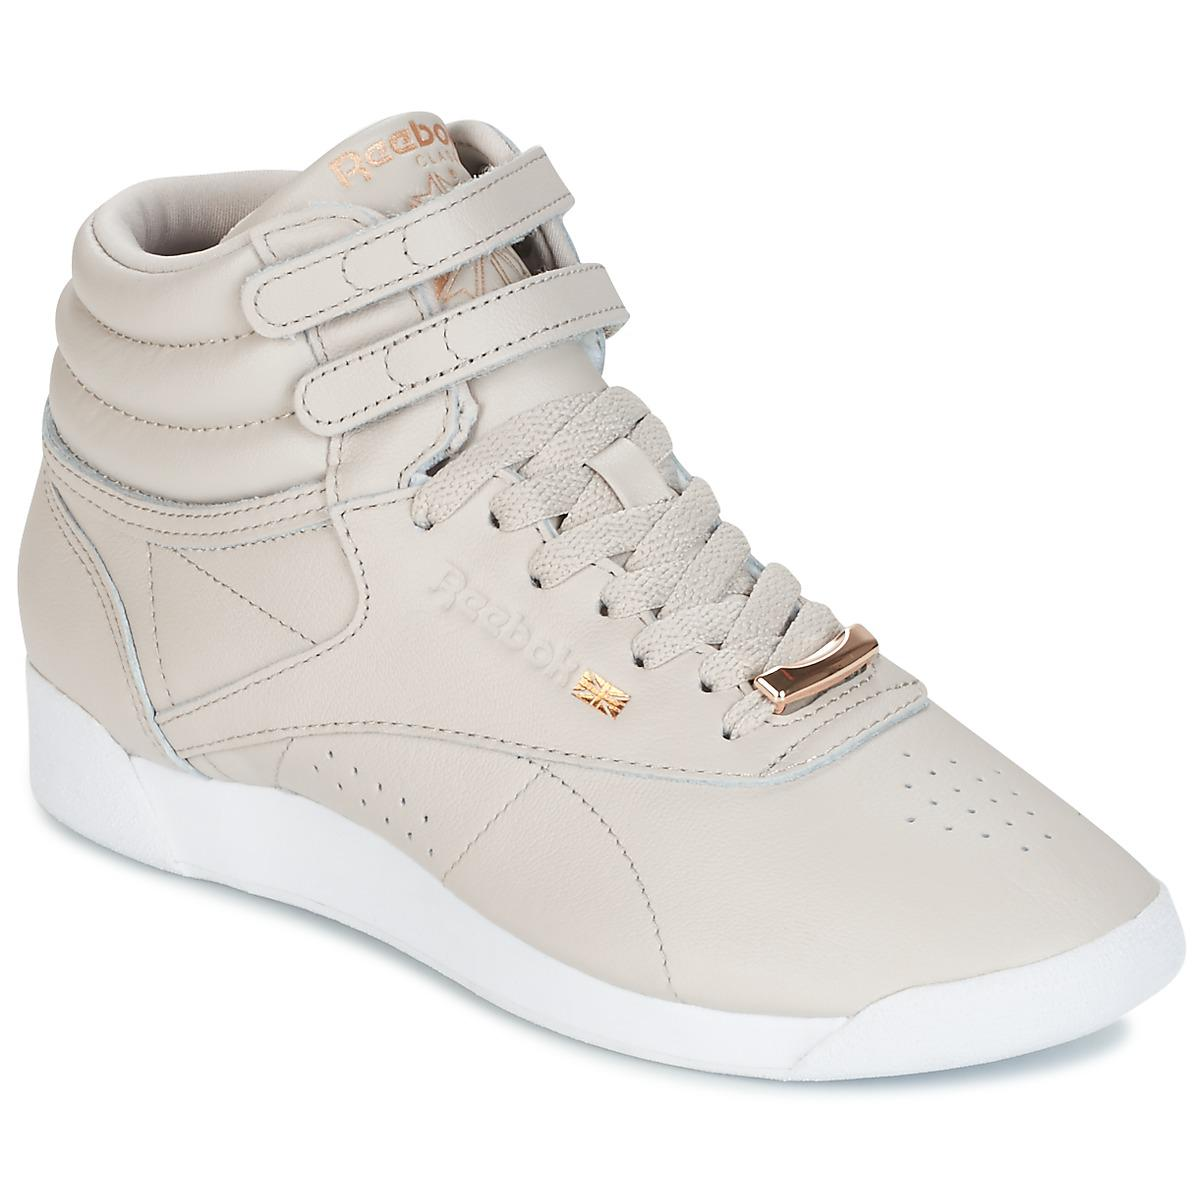 5dfc678928d Reebok F s Hi Muted Women s Shoes (trainers) In Beige in Natural - Lyst